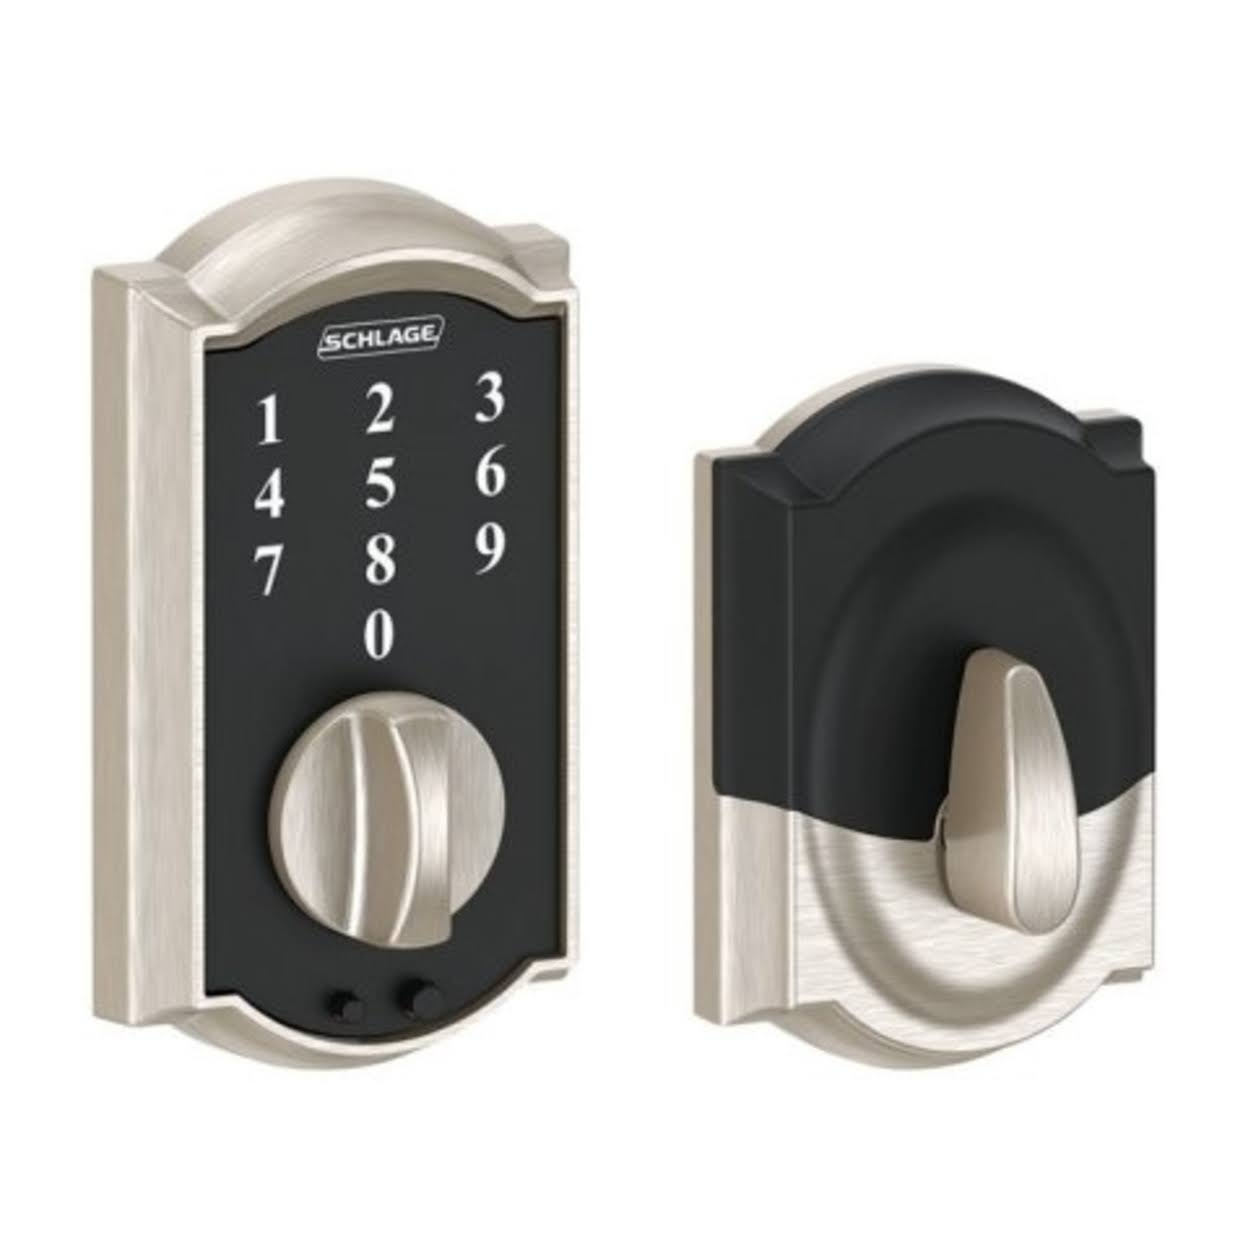 Schlage Touch Camelot Touchscreen Electronic Entry Door Deadbolt - With Keypad,Satin Nickel